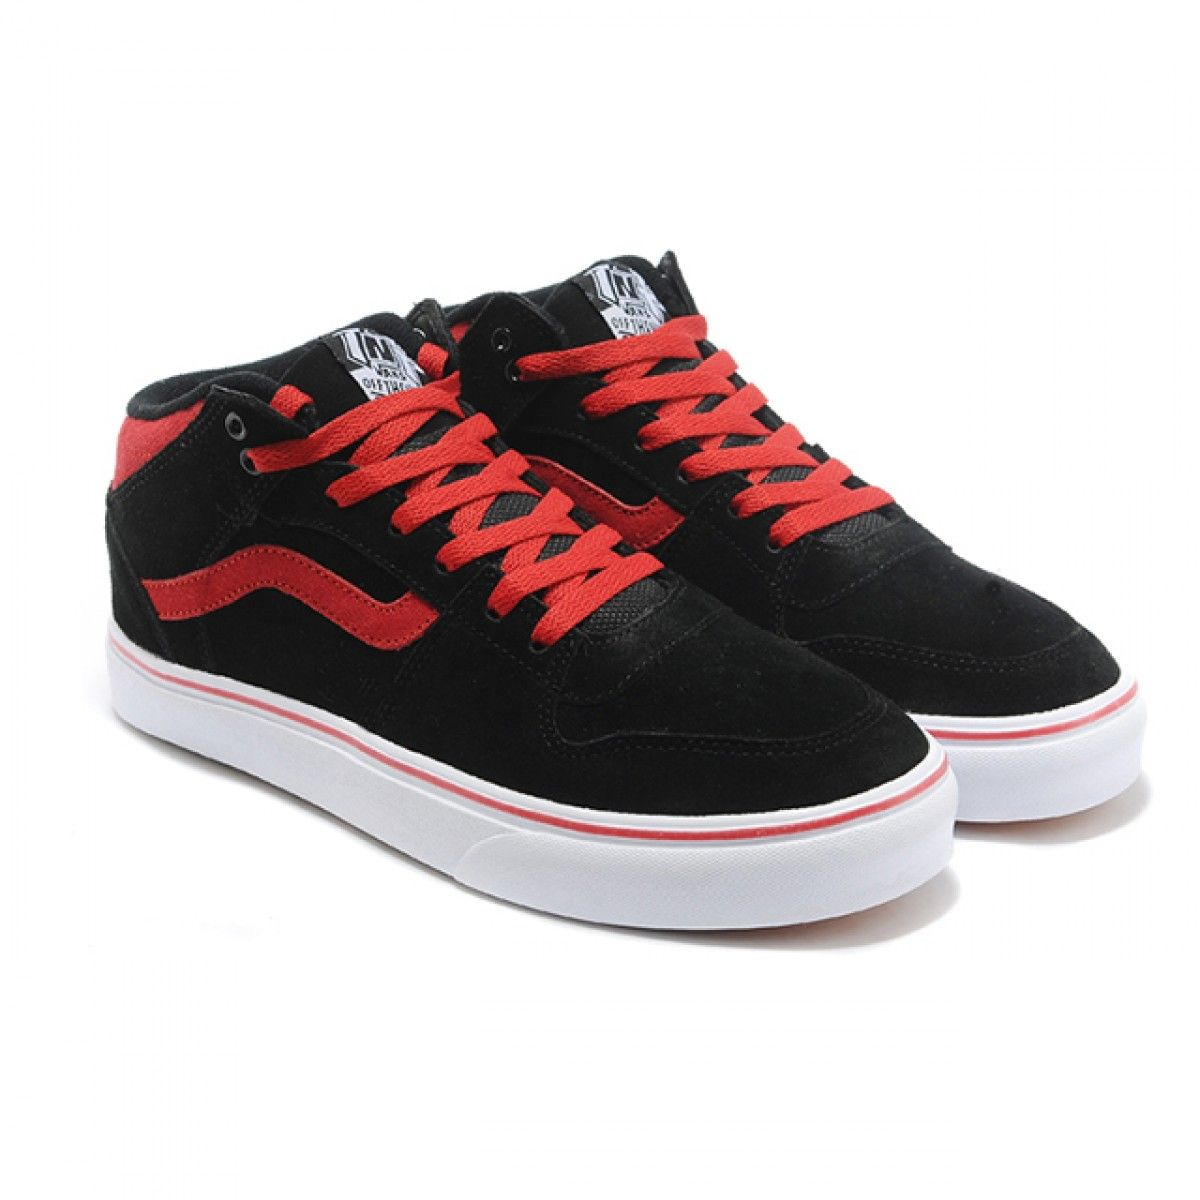 ccda2afca1 Vans Shoes Black Red TNT Half Cab Shoes Mens Classic Canvas